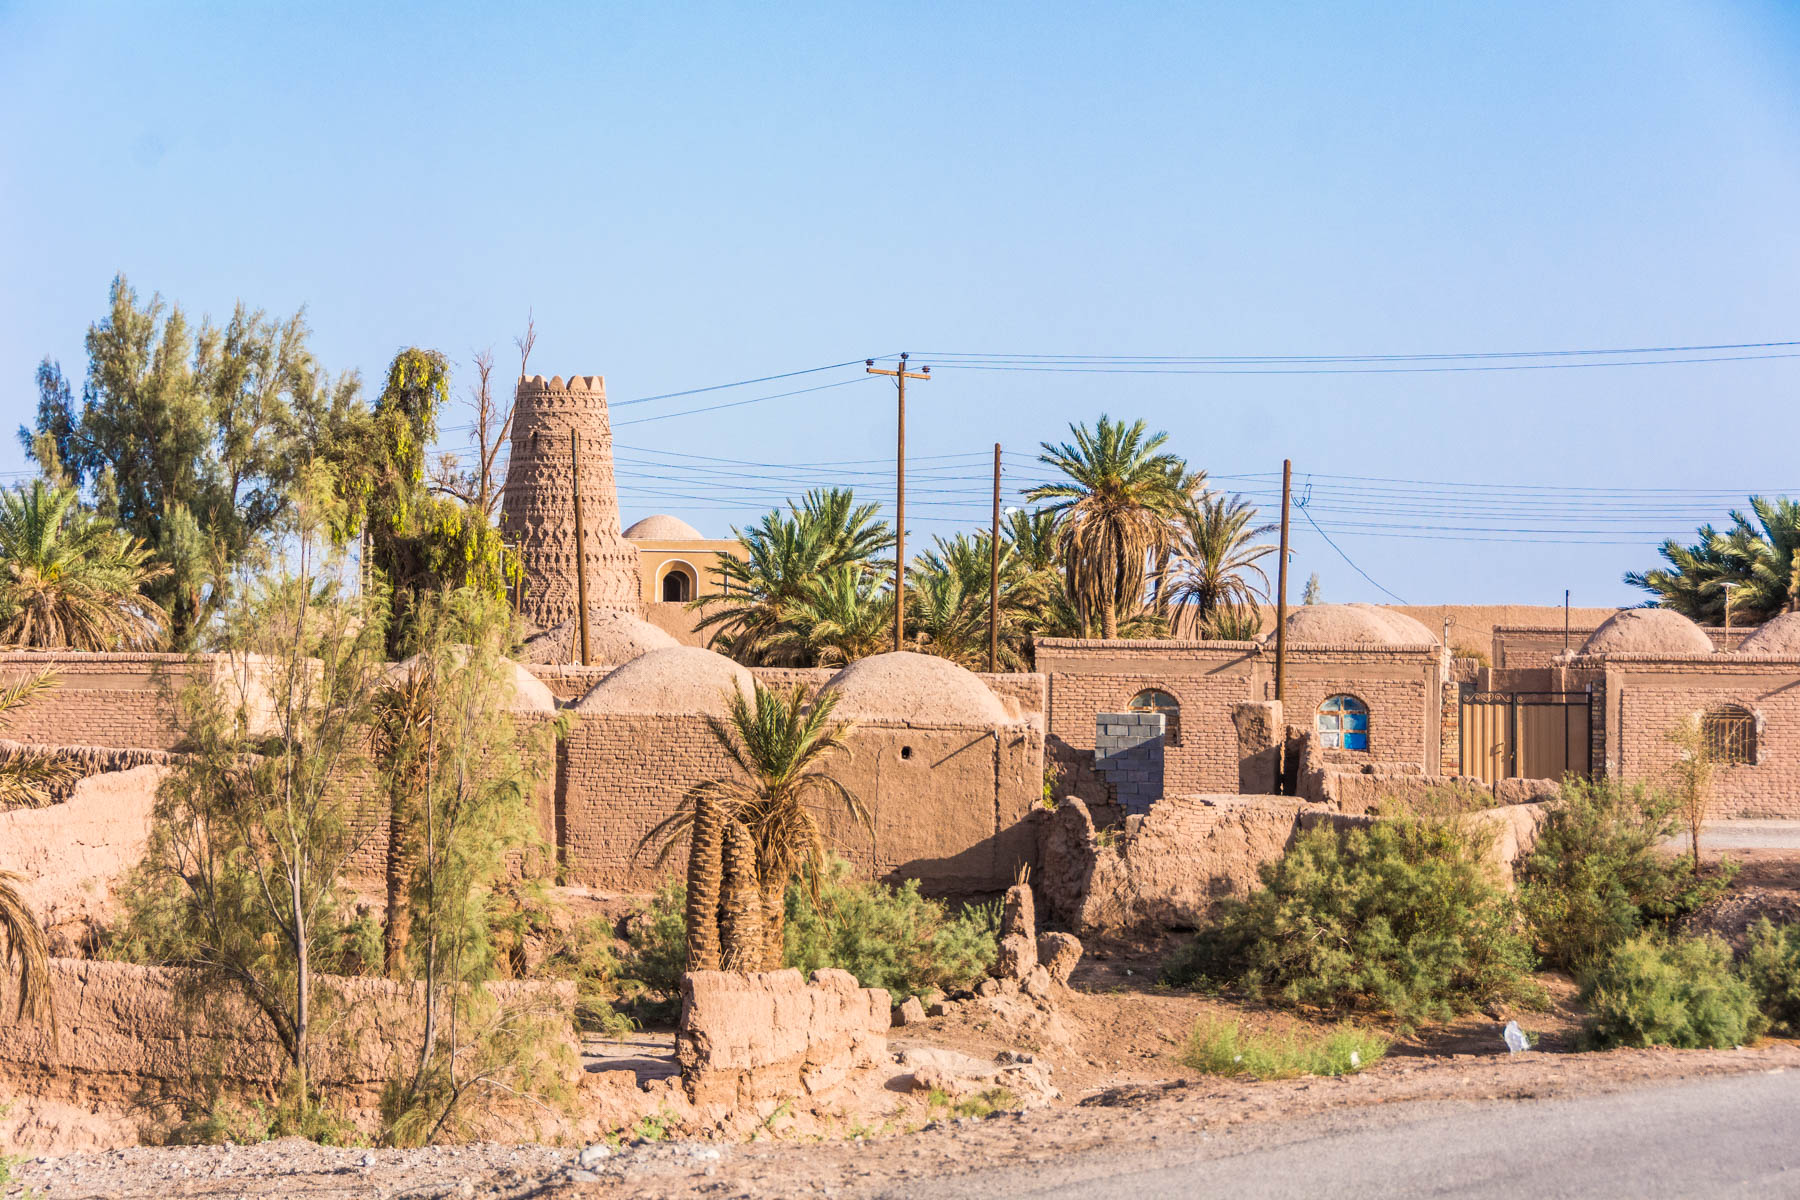 The small desert town of Shahdad, Iran in the heat of summer.